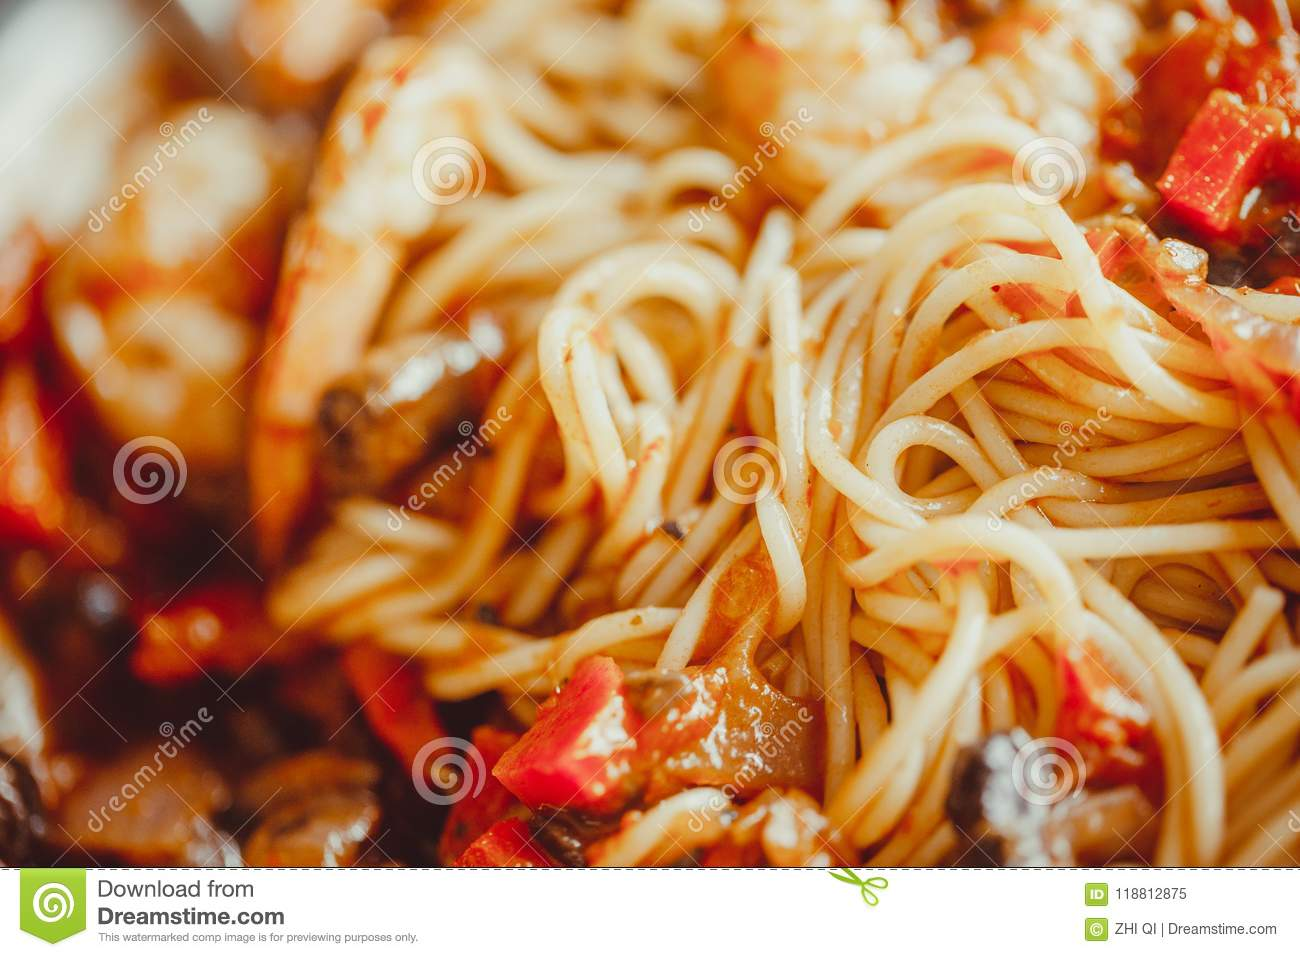 Angel Hair Pasta With Tomato Sauce Garlic And Shrimp Stock Image